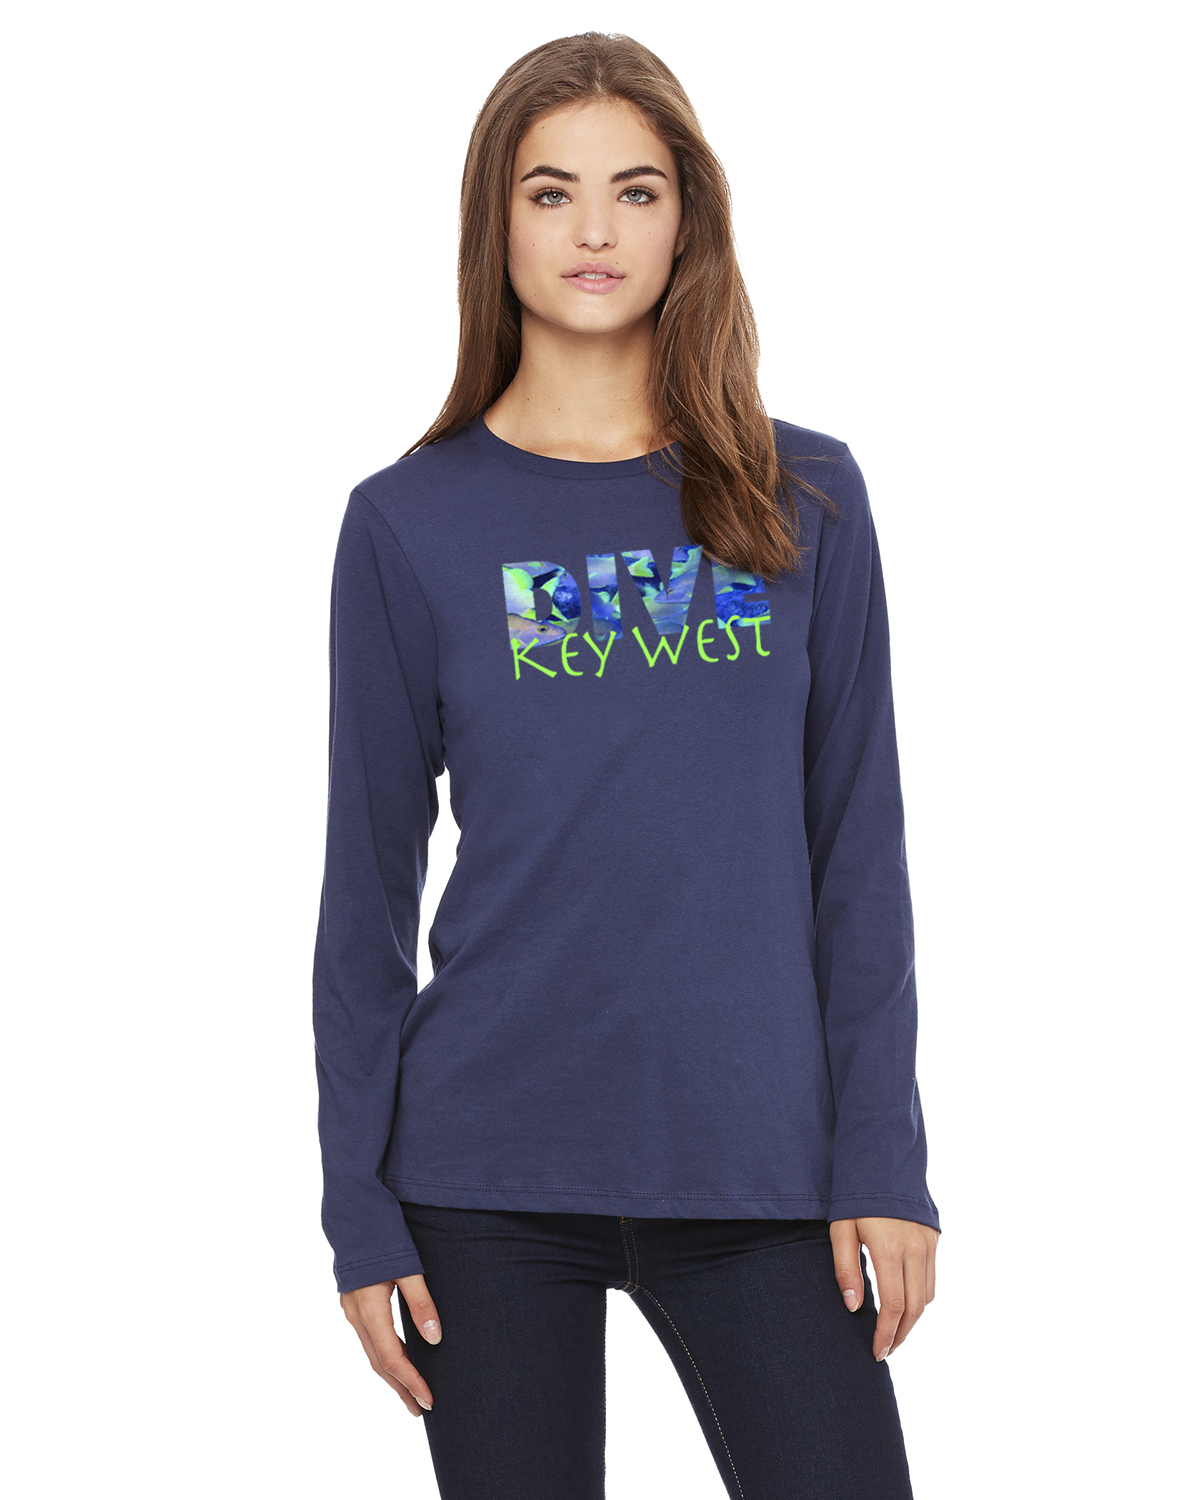 Women's Long Sleeve DIVE Key West T-Shirt (Navy)